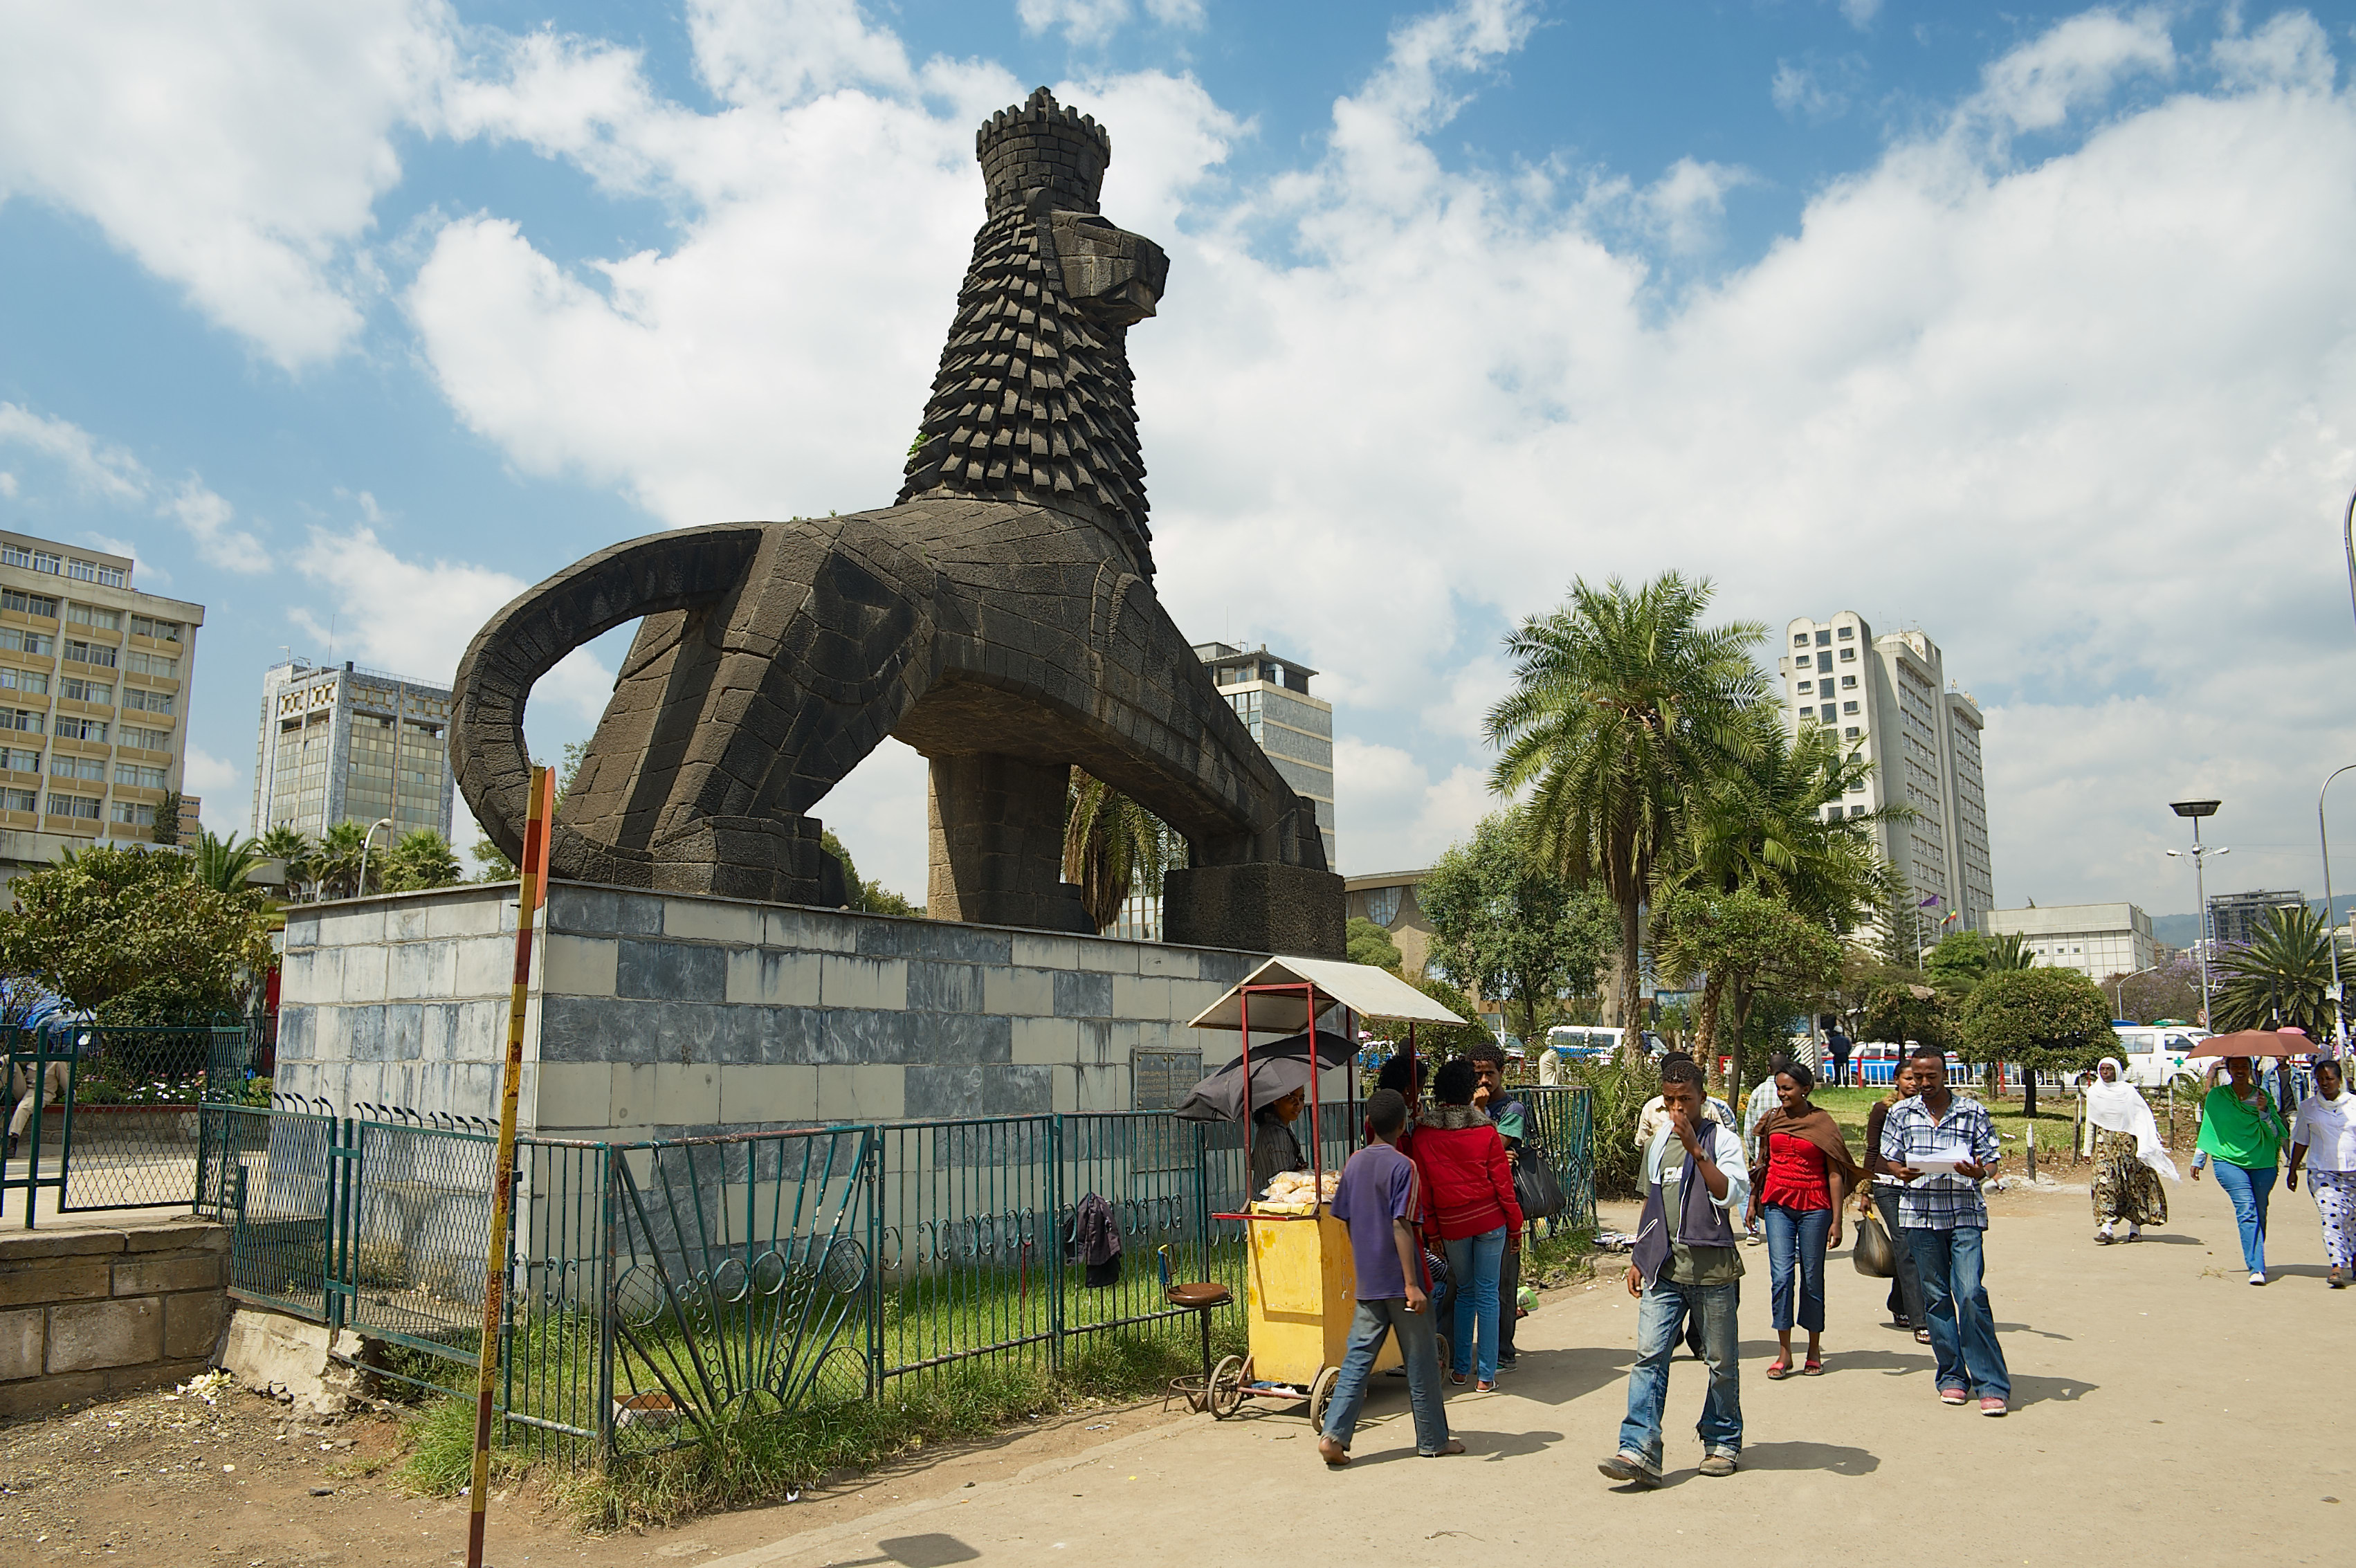 Monument to the Lion of Judah, Addis Ababa